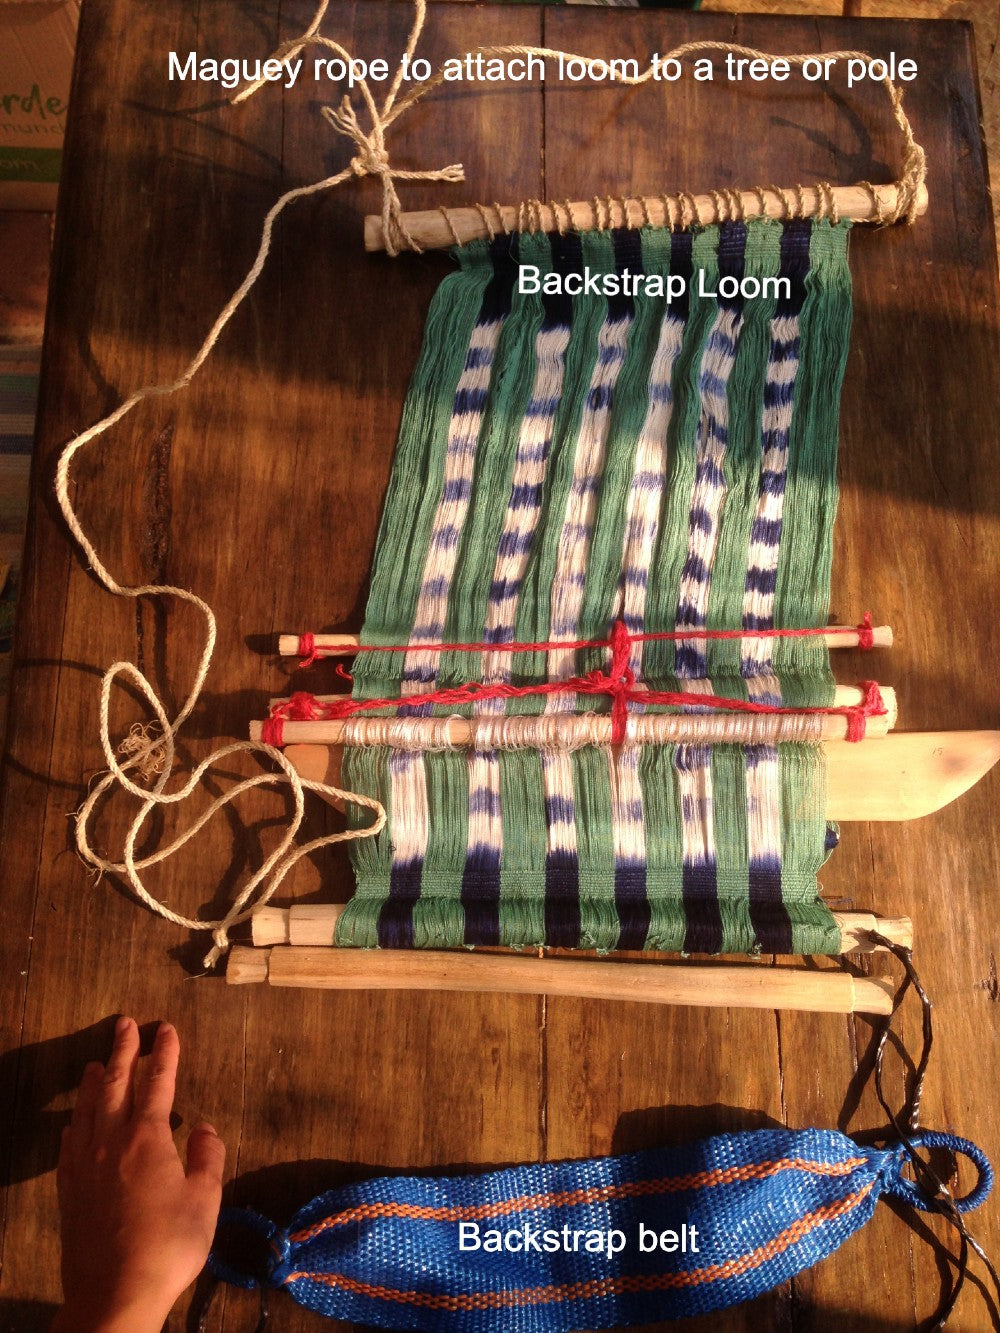 Practice Backstrap Loom Kit